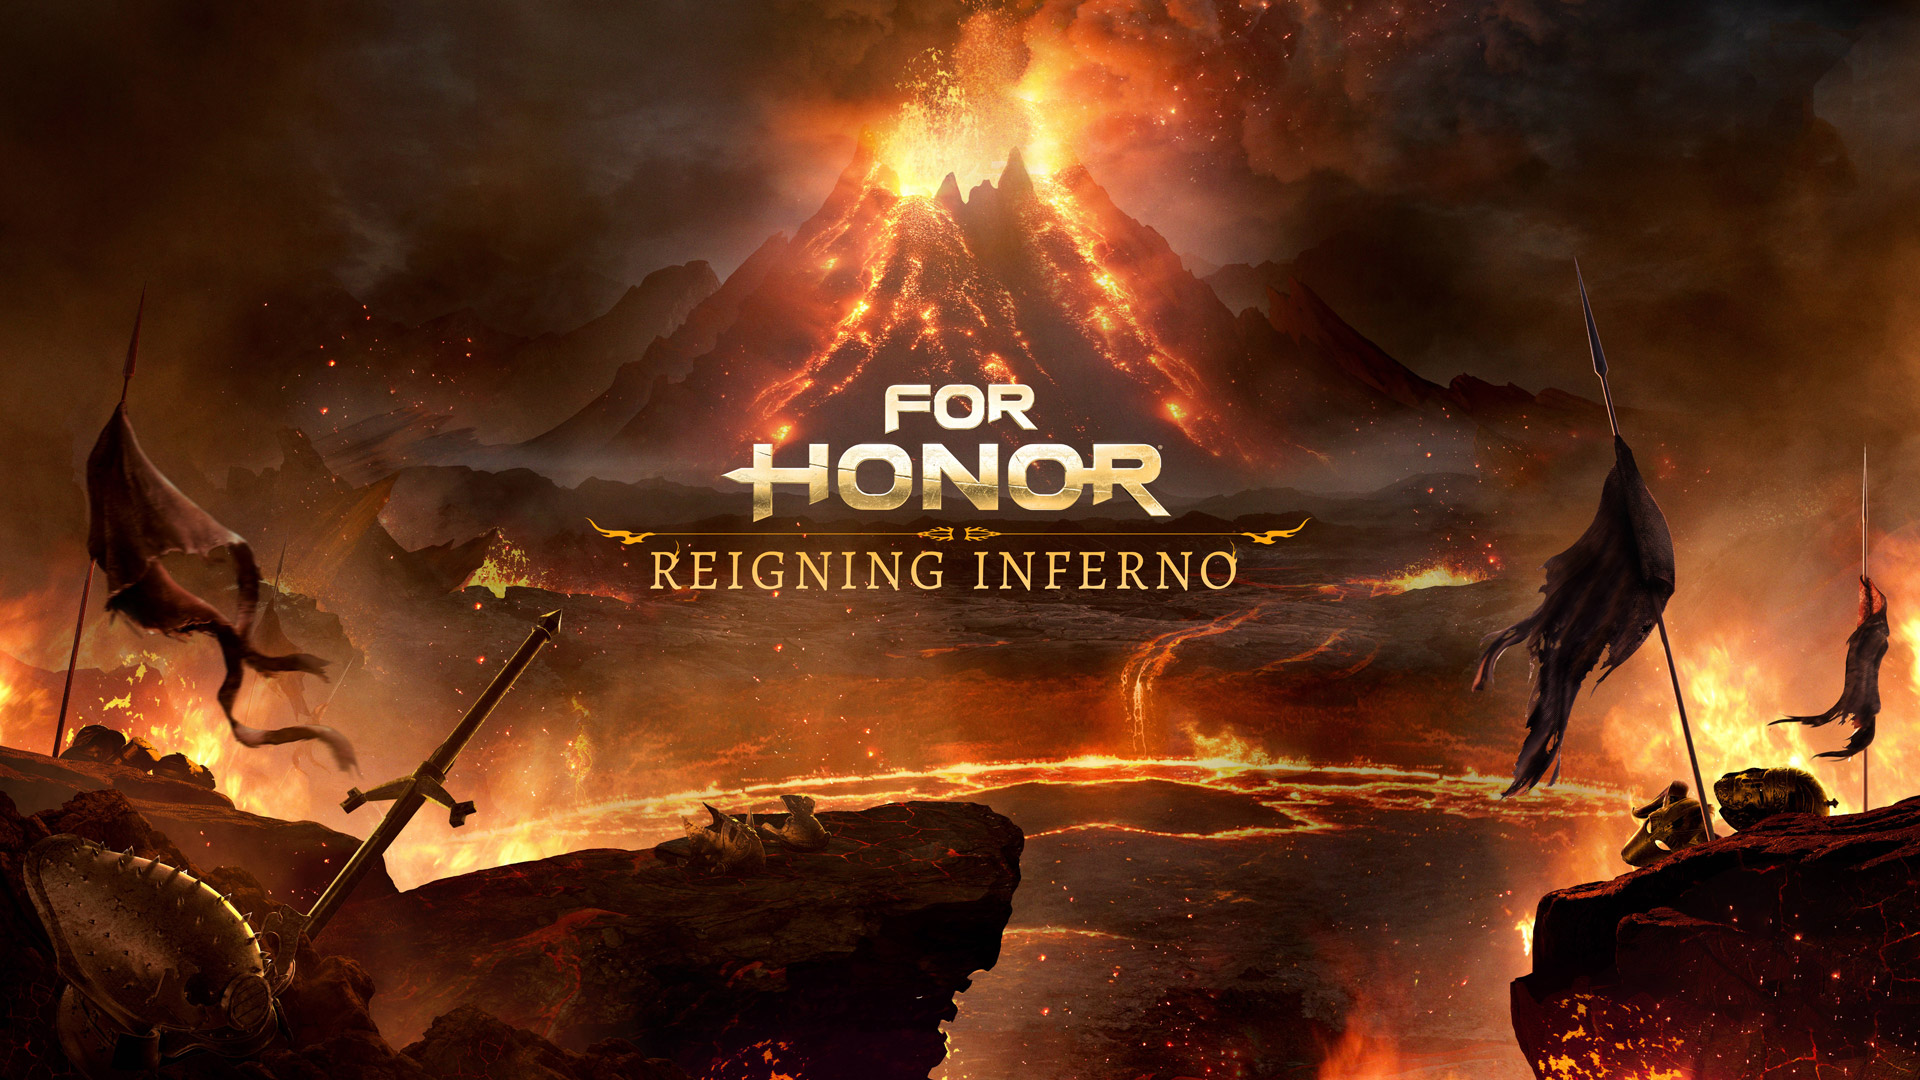 for honor wallpaper,flame,geological phenomenon,heat,fire,strategy video game